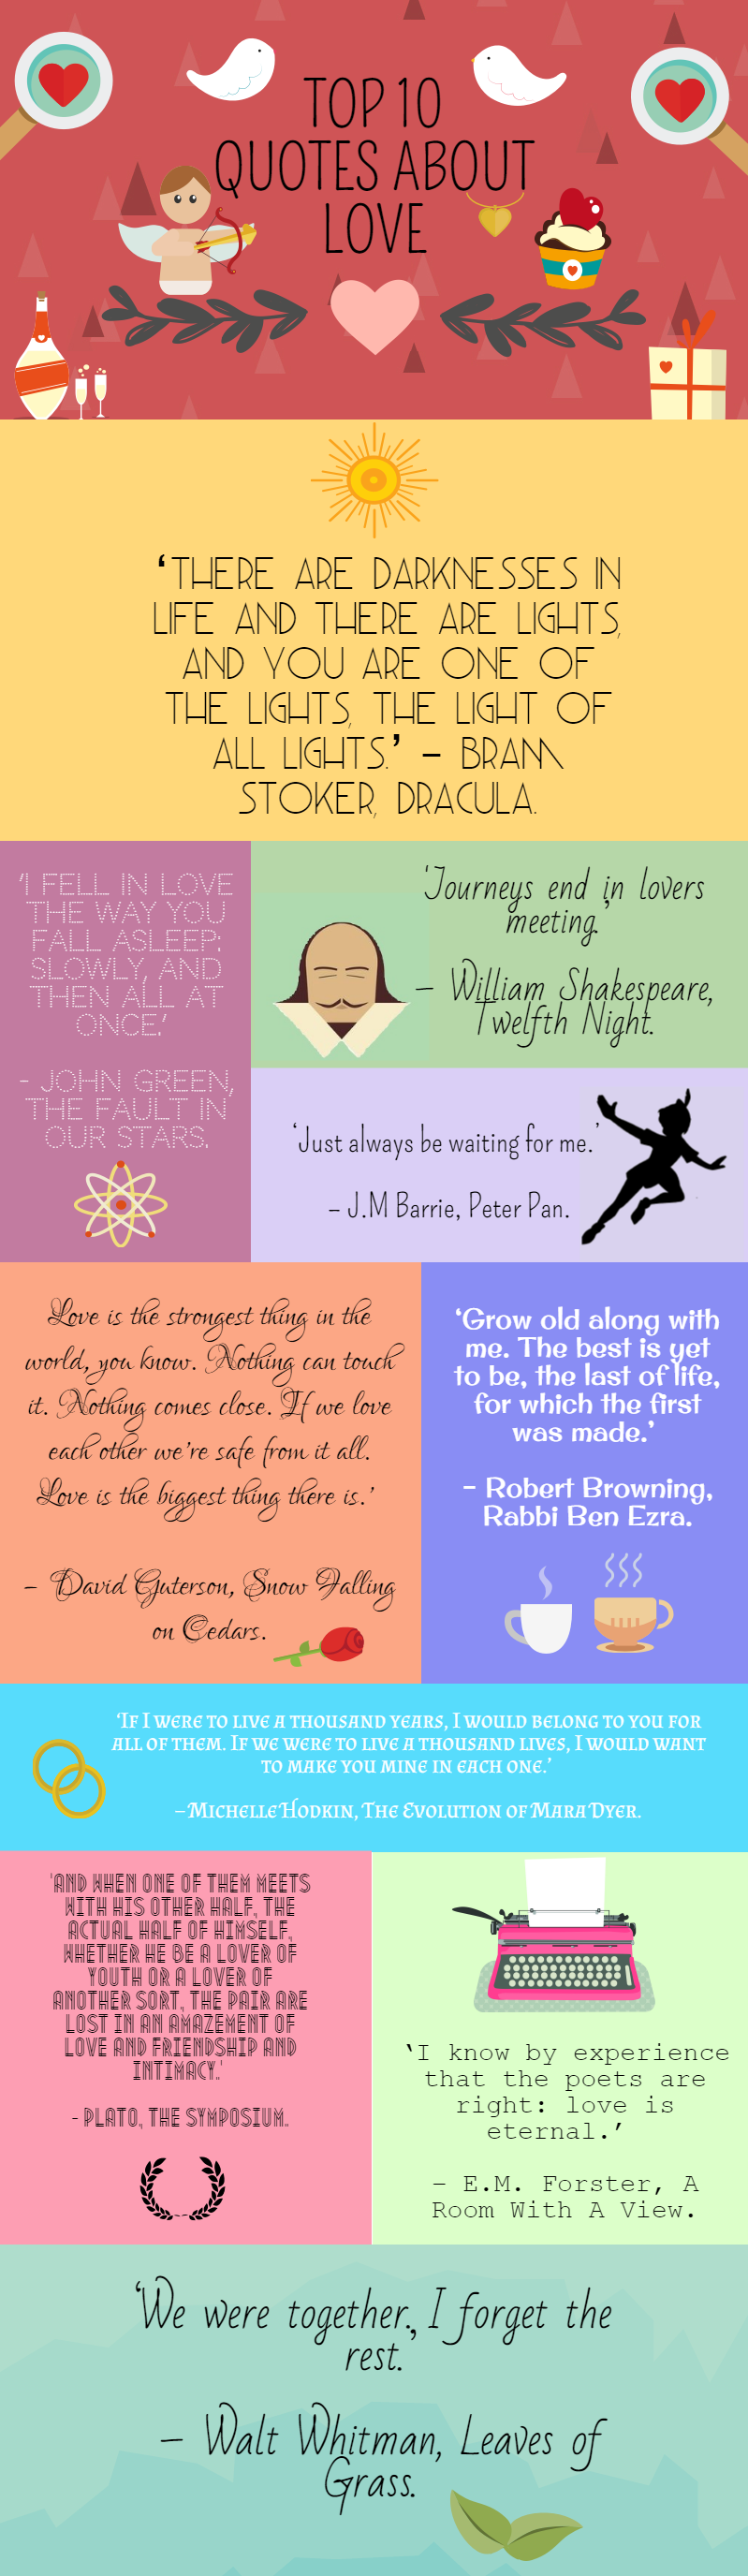 Top 10 Love Quotes Infographic